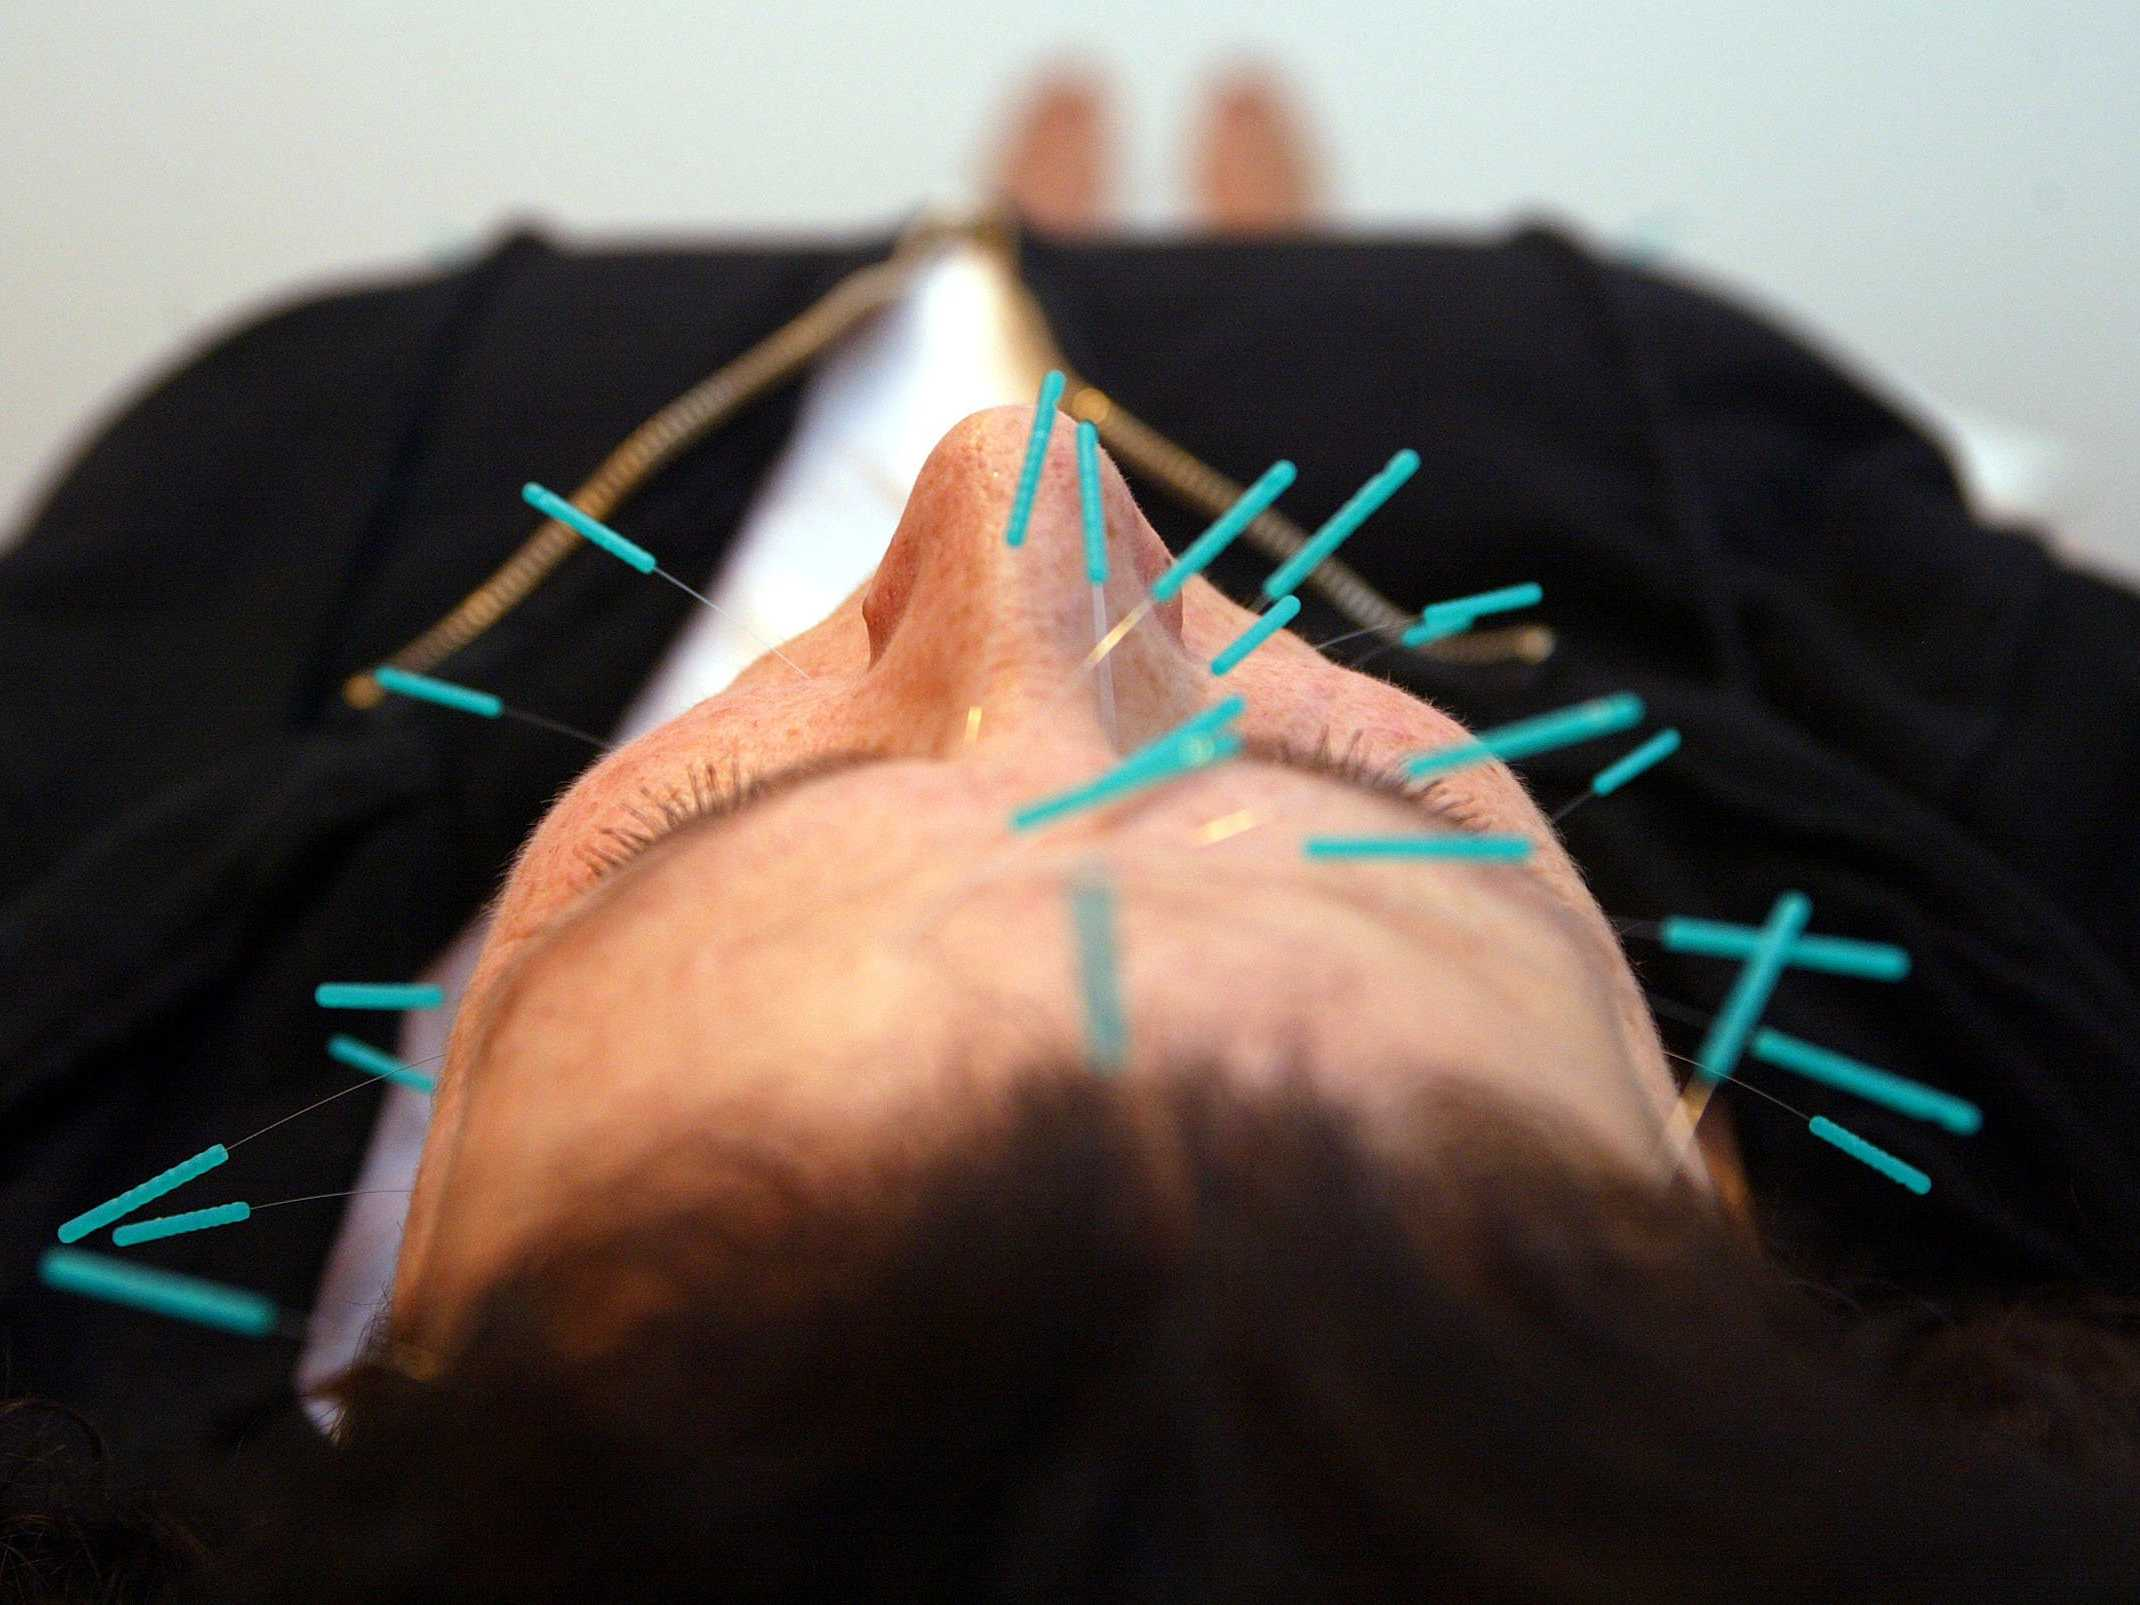 new-study-exposes-acupuncture-as-pseudoscience